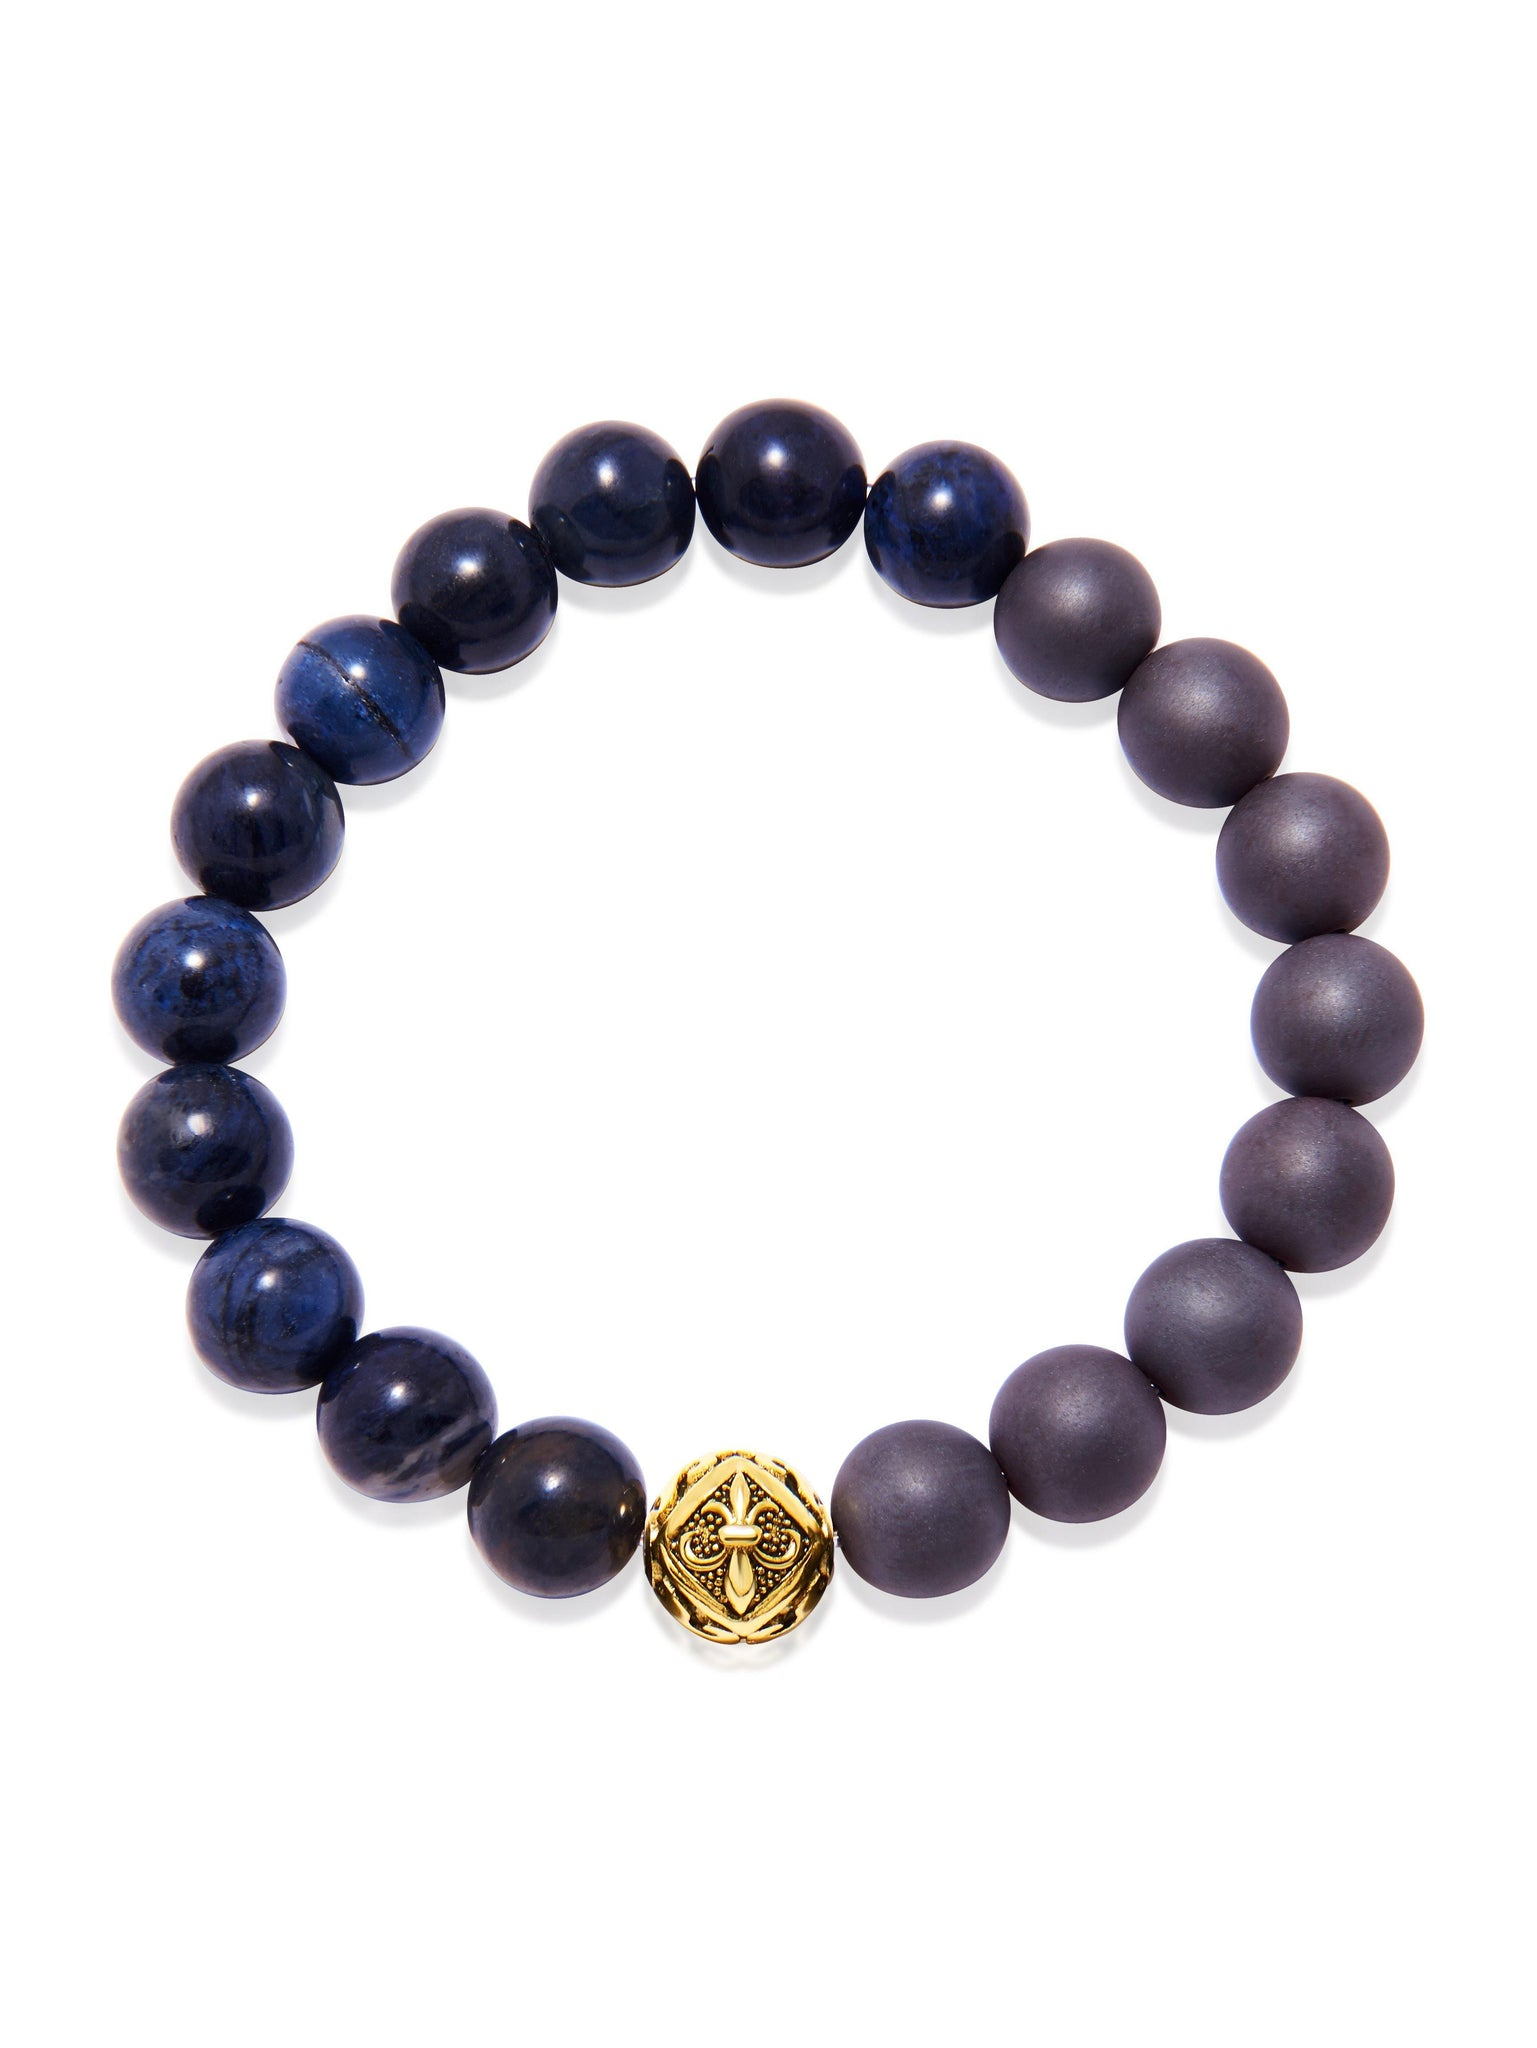 Wristband with Hematite and Dumortierite - Nialaya Jewelry